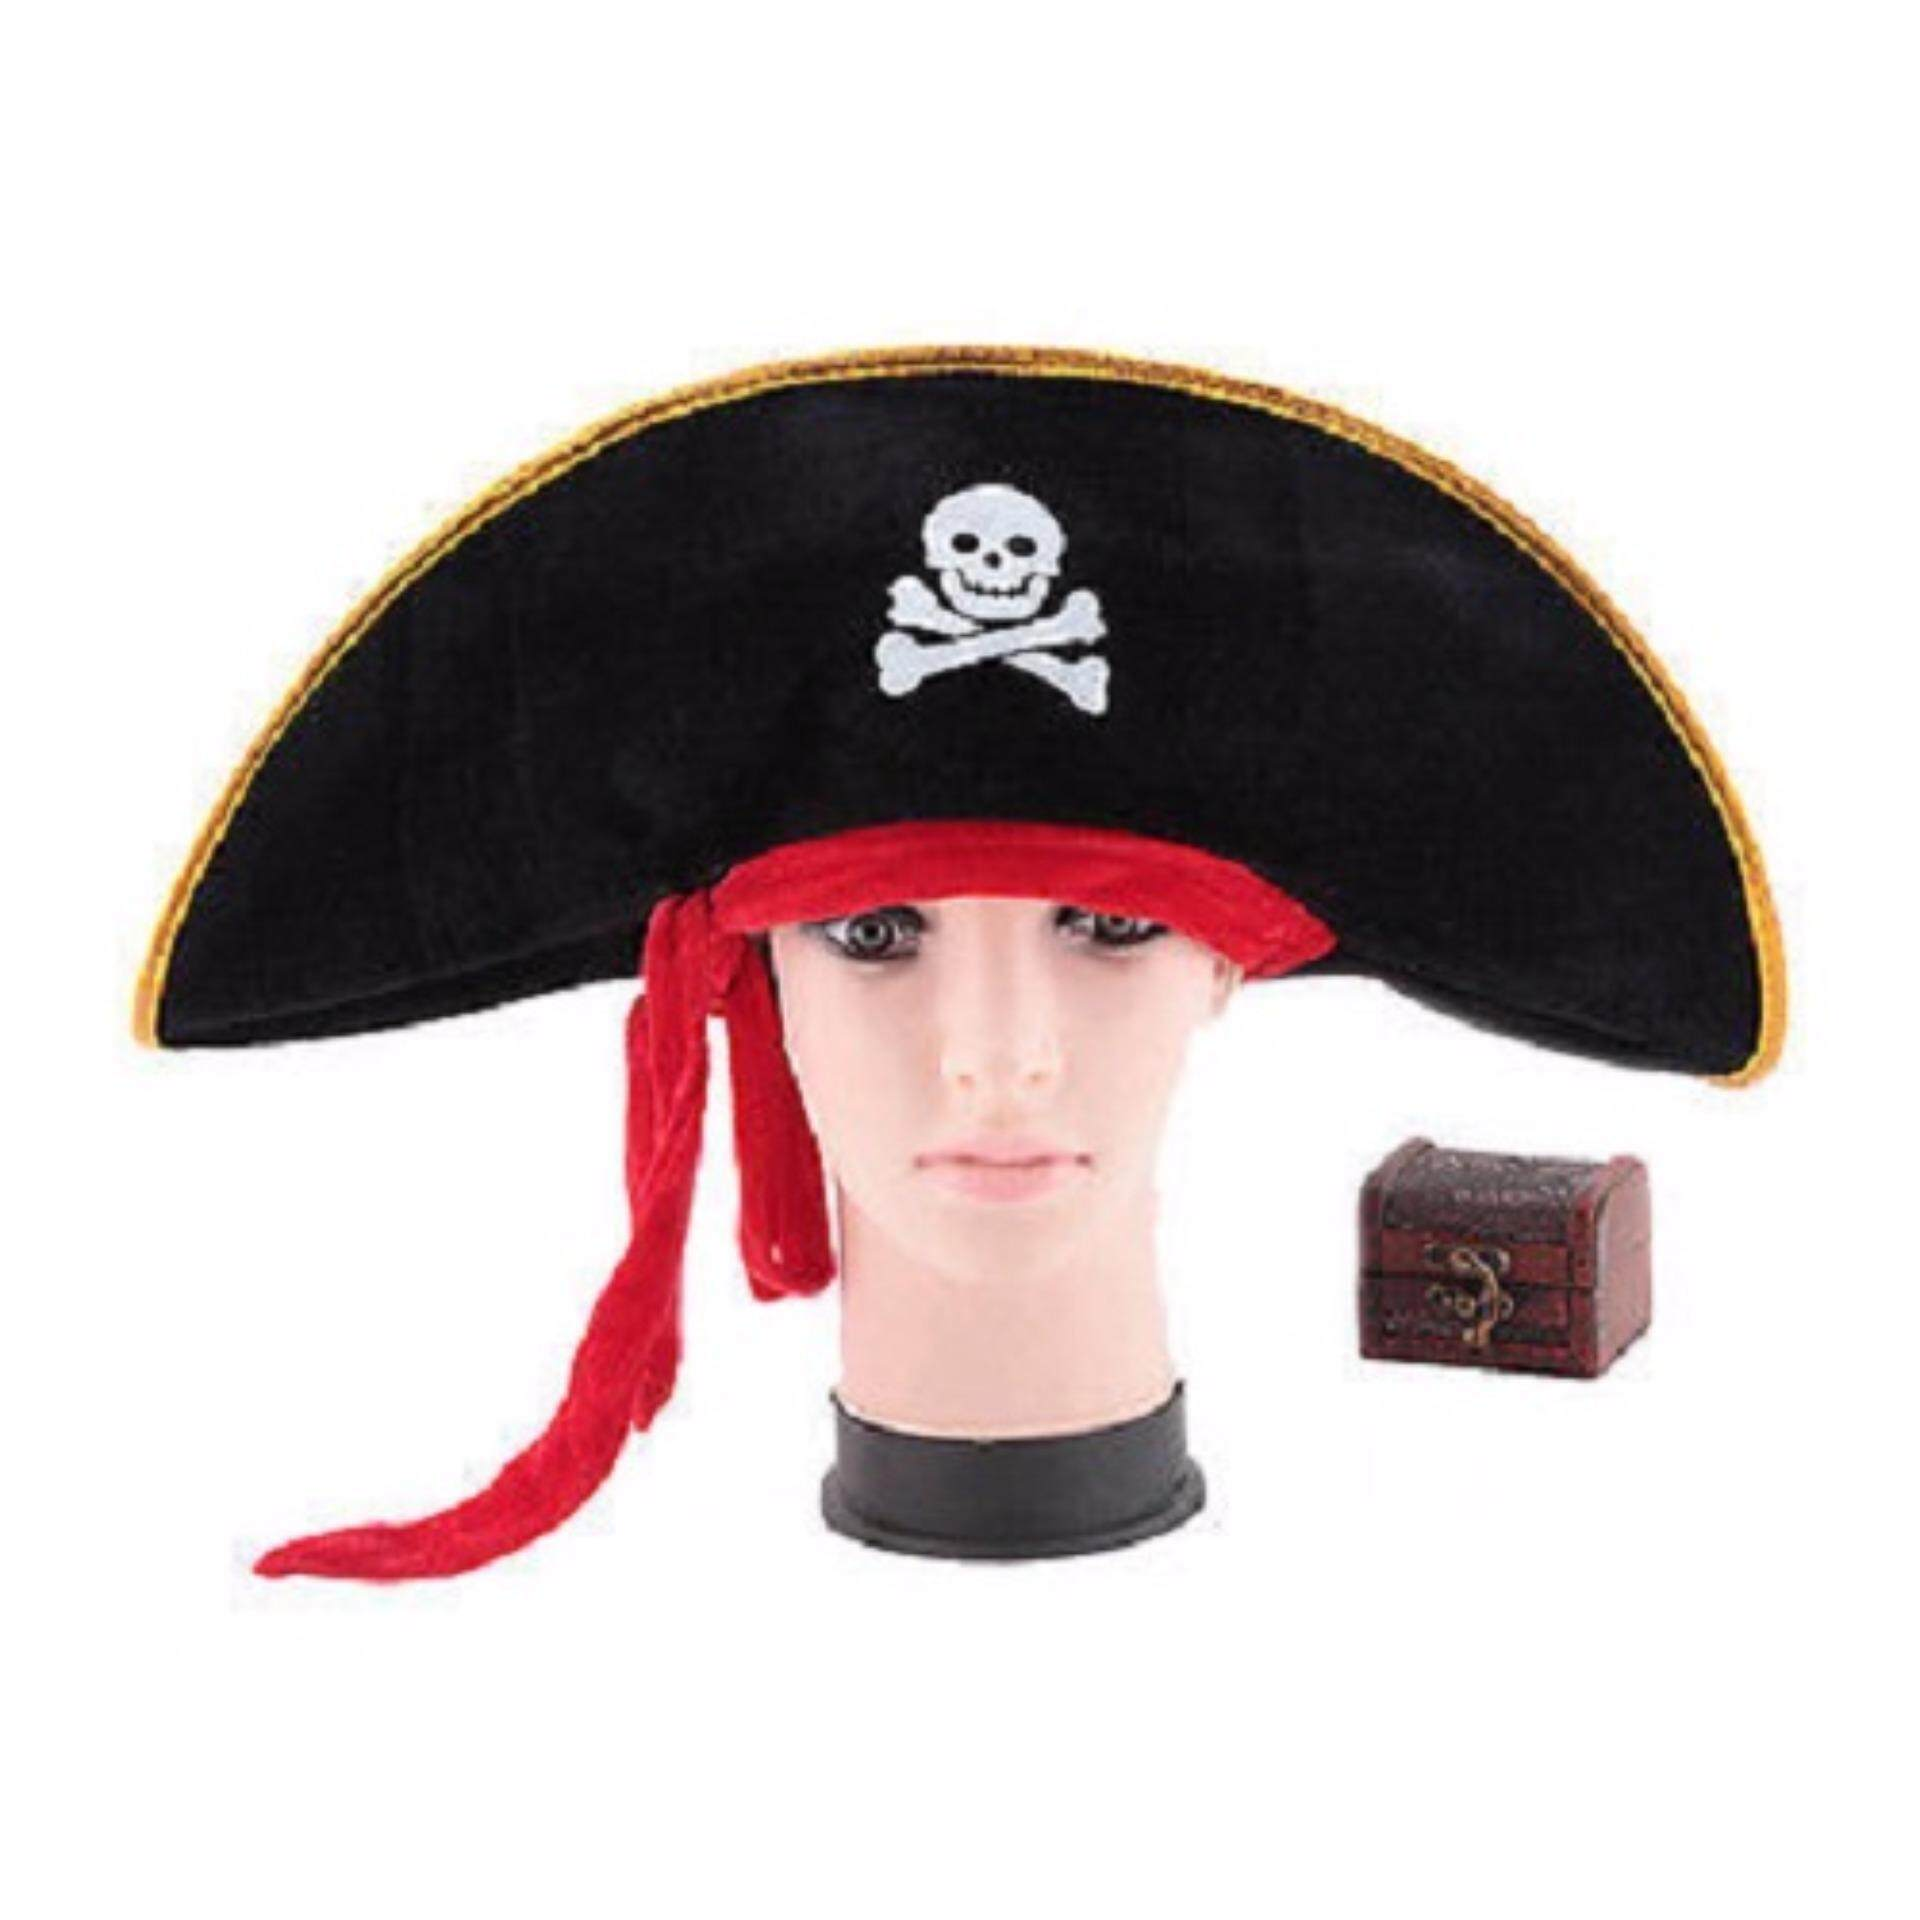 Character Costumes For The Best Prices In Malaysia Kostum Bee N Bug Hot Pirate Captain Hat Skull Crossbone Cap Costume Fancy Dress Party Halloween